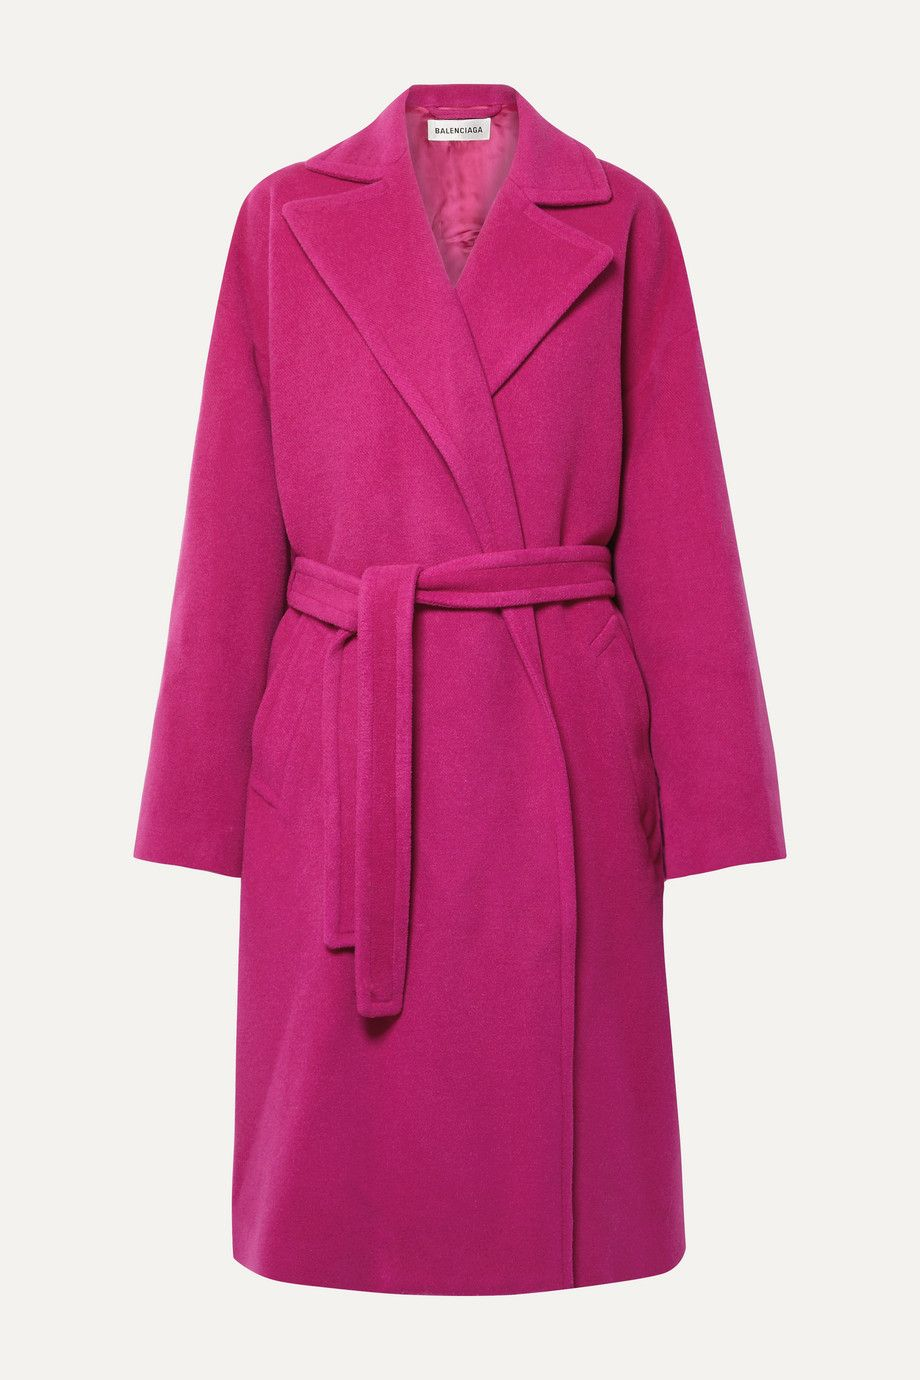 balenciaga-belted-fuchsia-camel-hair-blend-coat-net-a-porter-sale